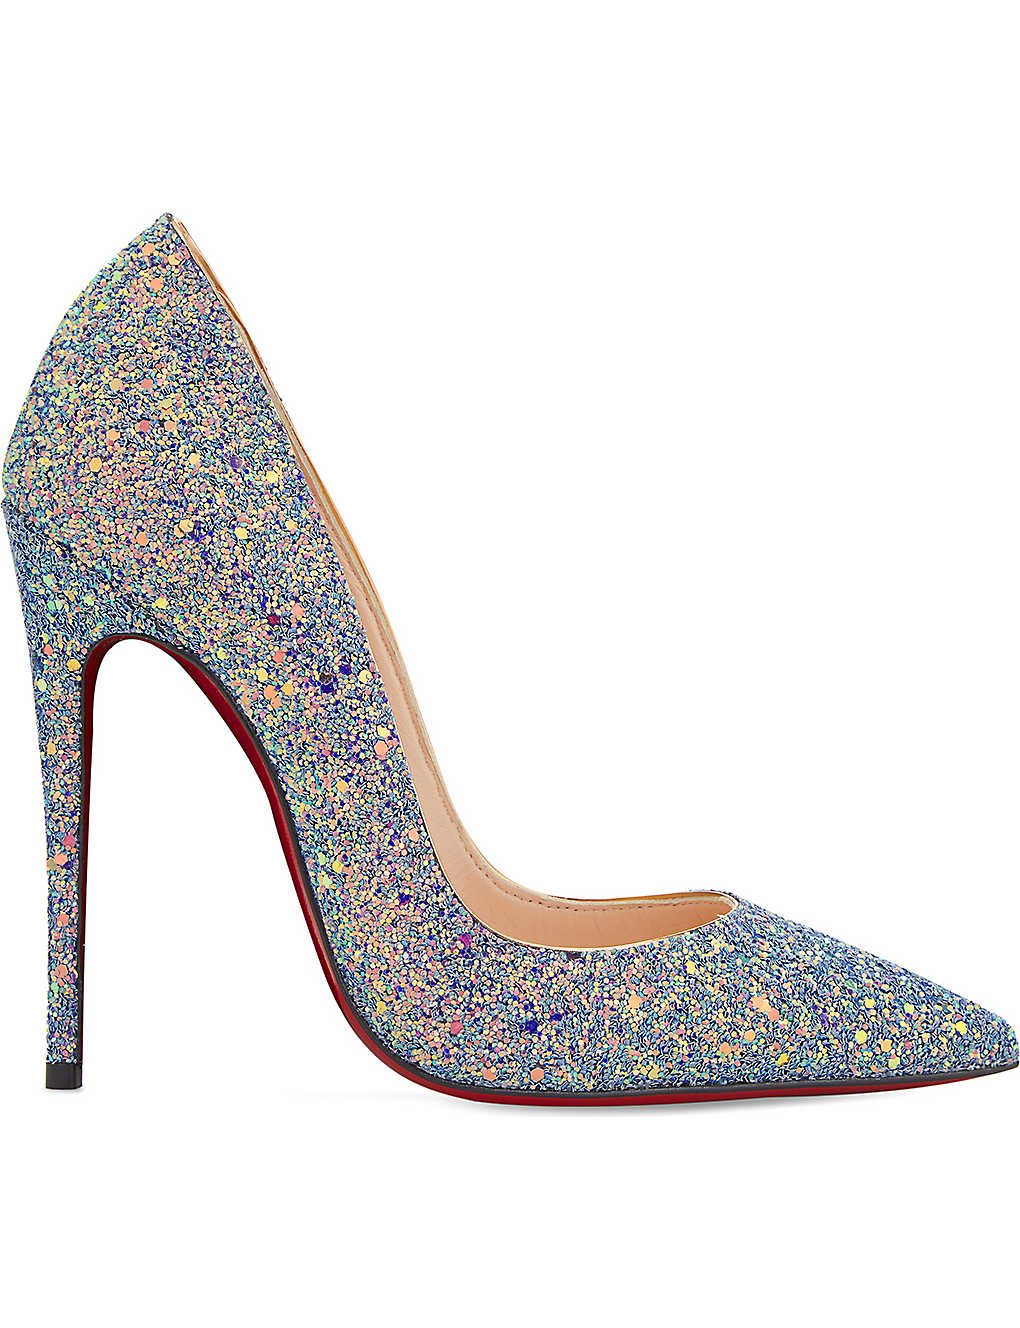 100% authentic 6cf60 7a0c2 CHRISTIAN LOUBOUTIN - So Kate 120 glitter dragonfly ...